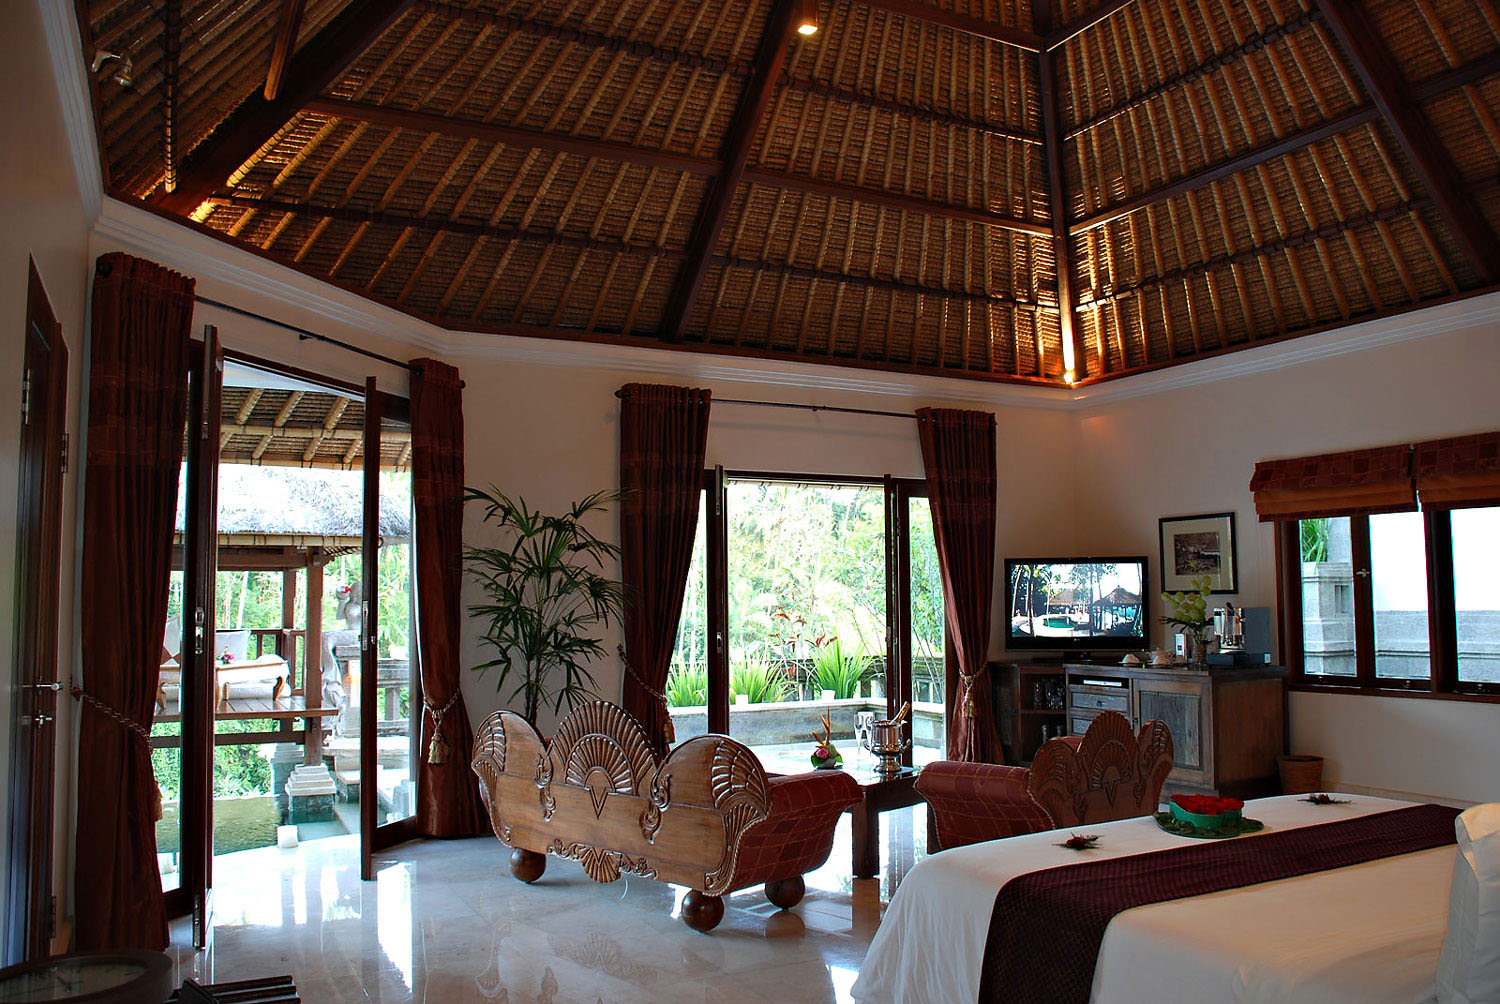 Romantic viceroy bali resort in ubud idesignarch for Interior decoration living room roof